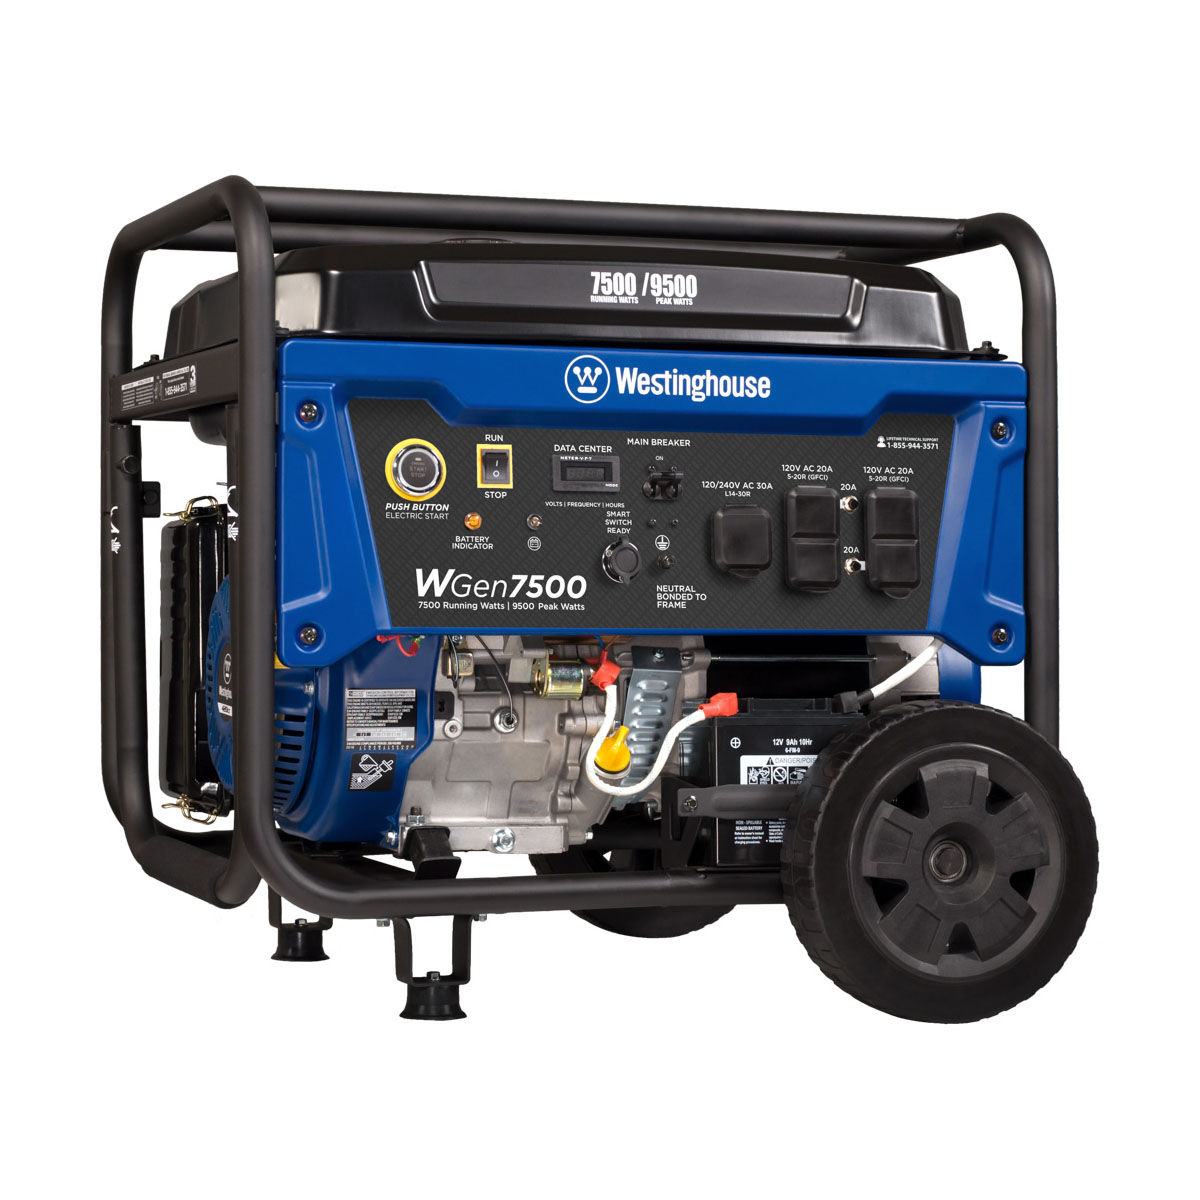 Westinghouse WGen7500 Gas Powered Portable Generator with Electric Start - 7500 Running Watts and 9500 Peak Watts - CARB Compliant